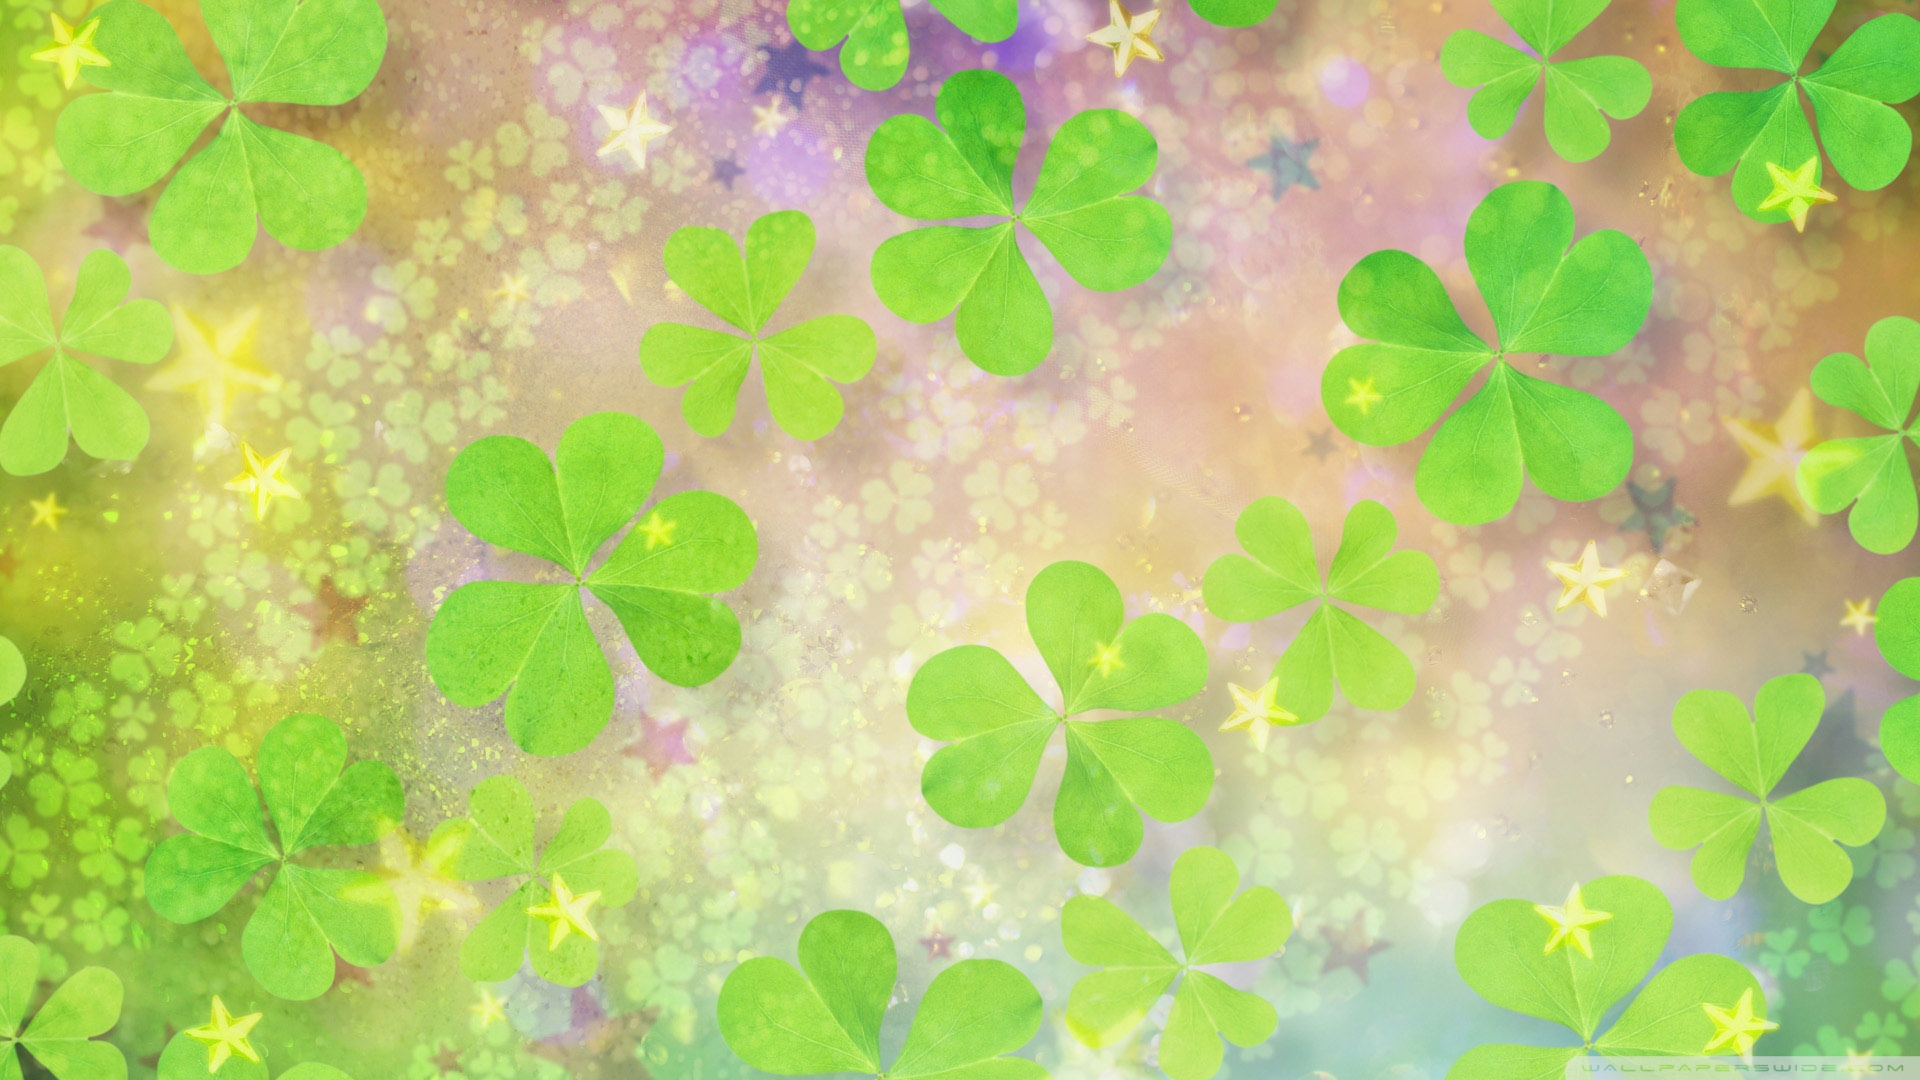 Pink Shamrock Wallpaper Pink clover on 1920x1080